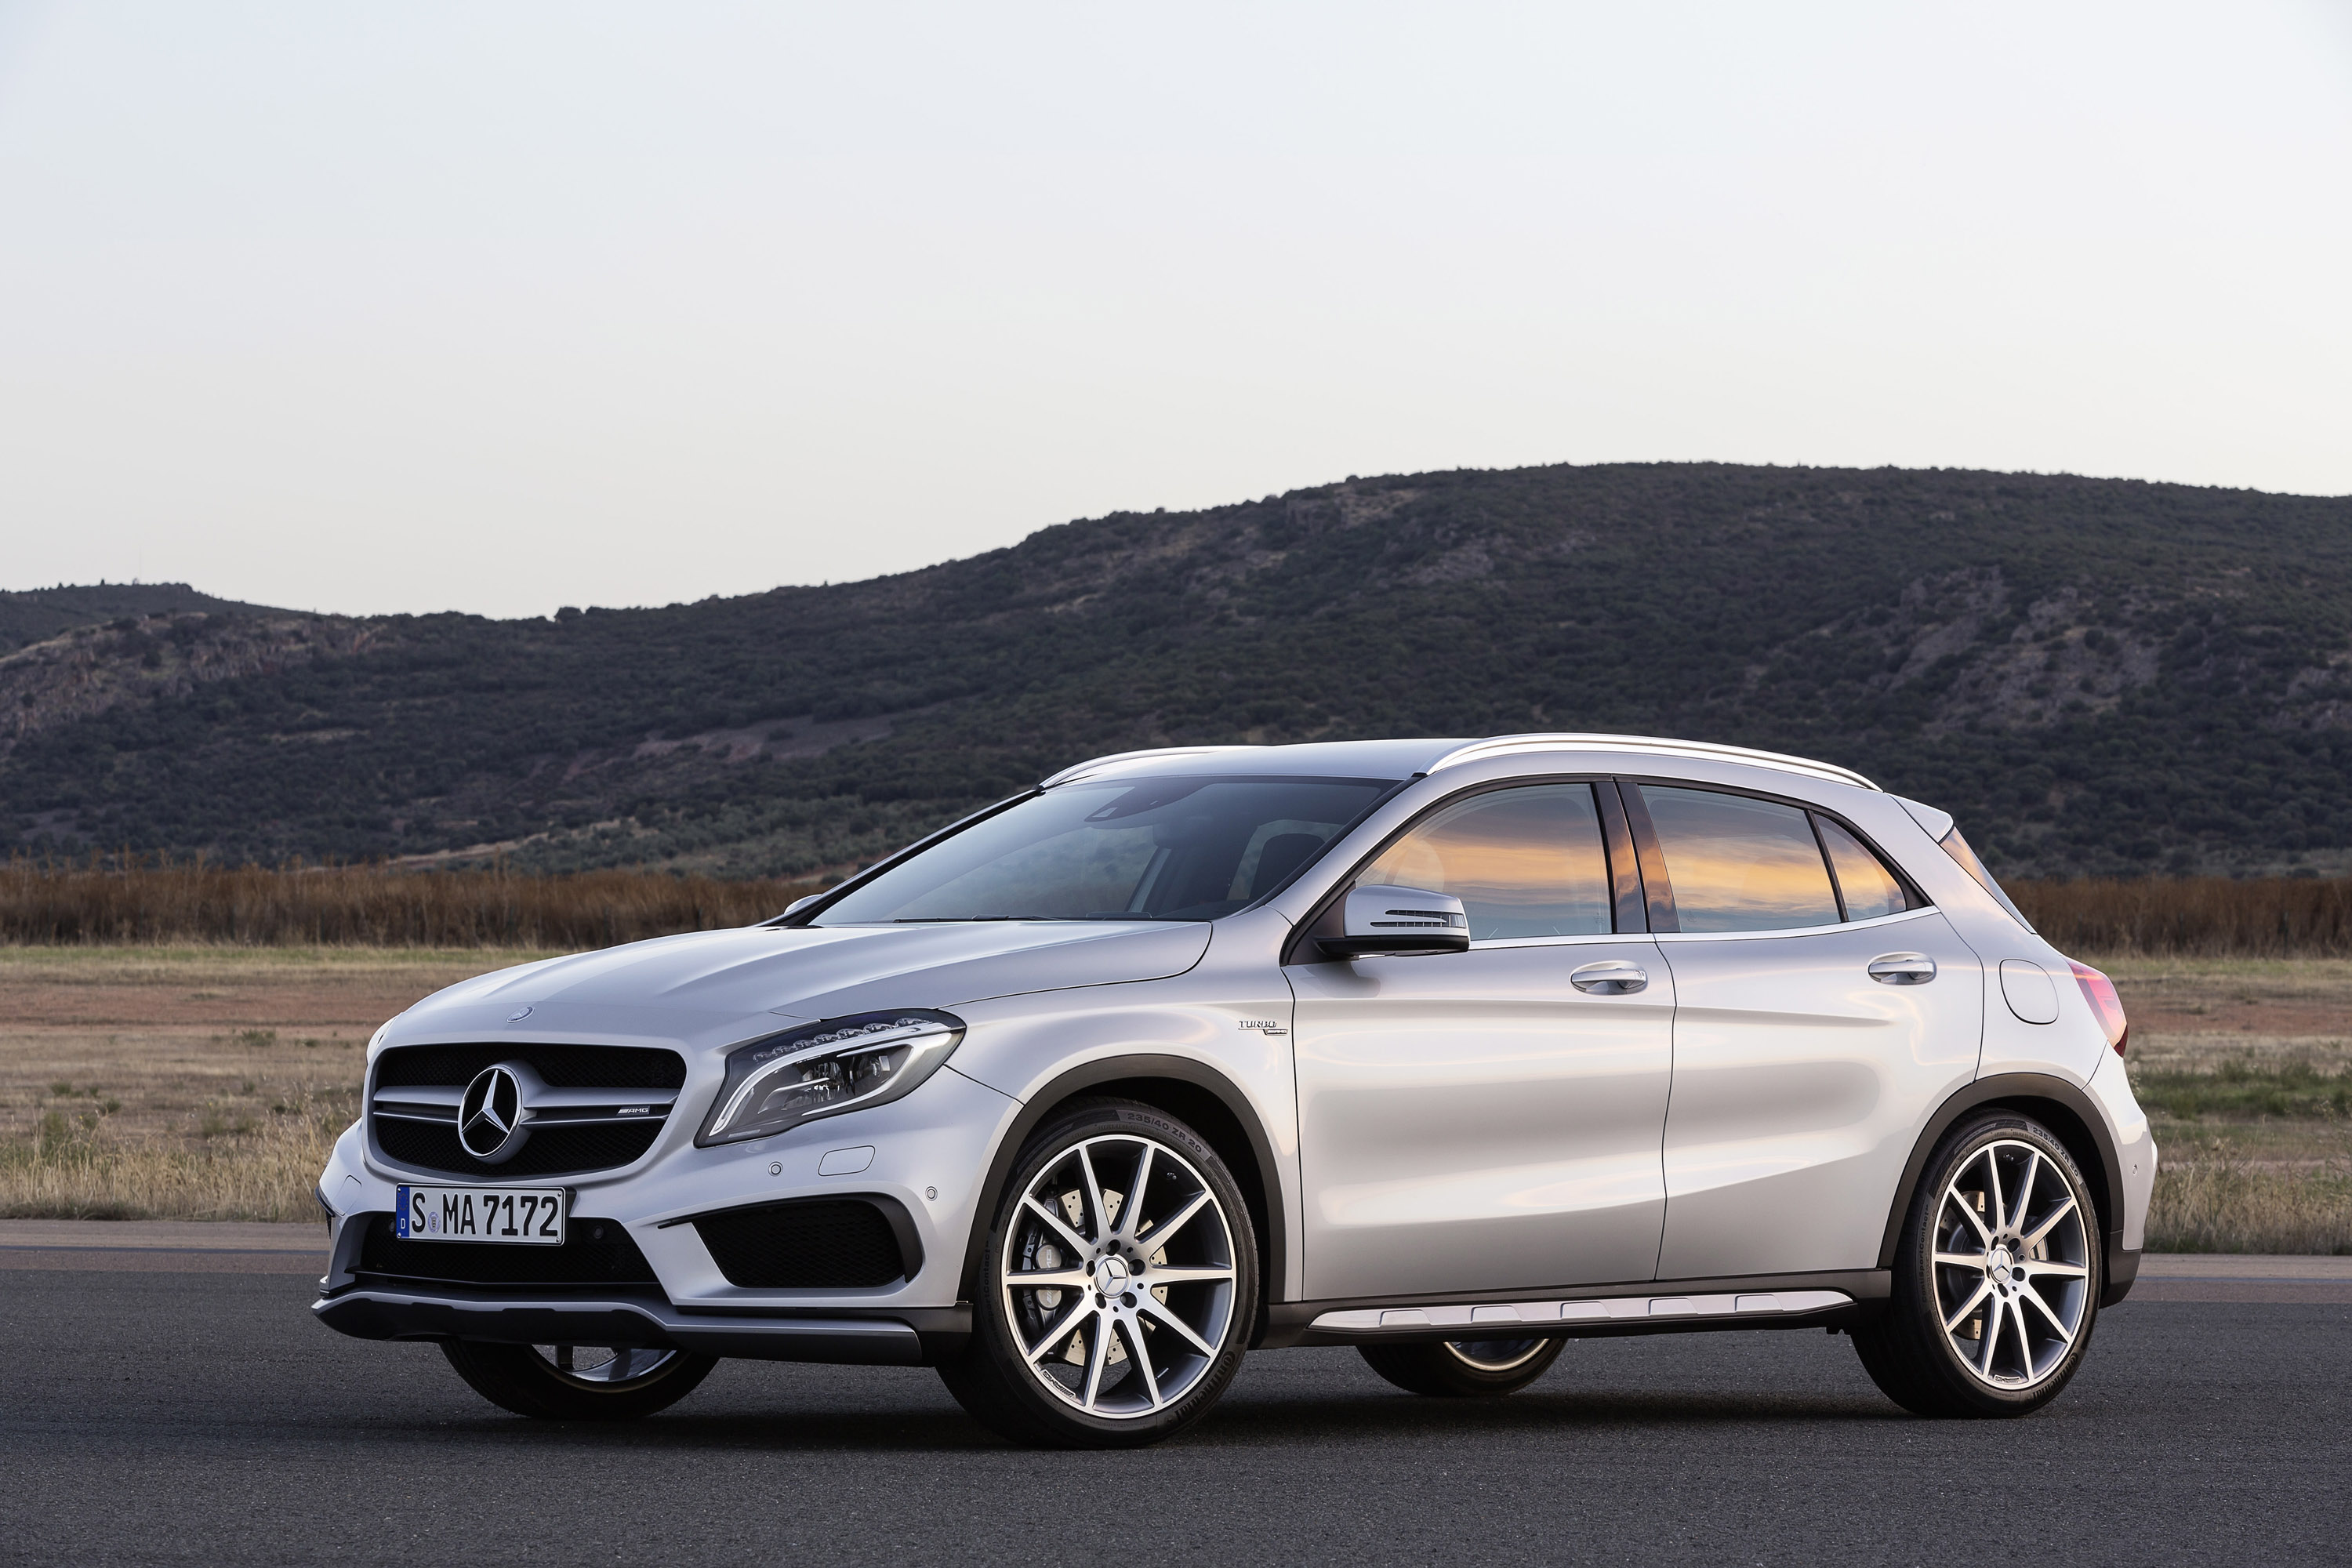 wallpaper much a how coupe amg mercedes pictures information benz does cost specs